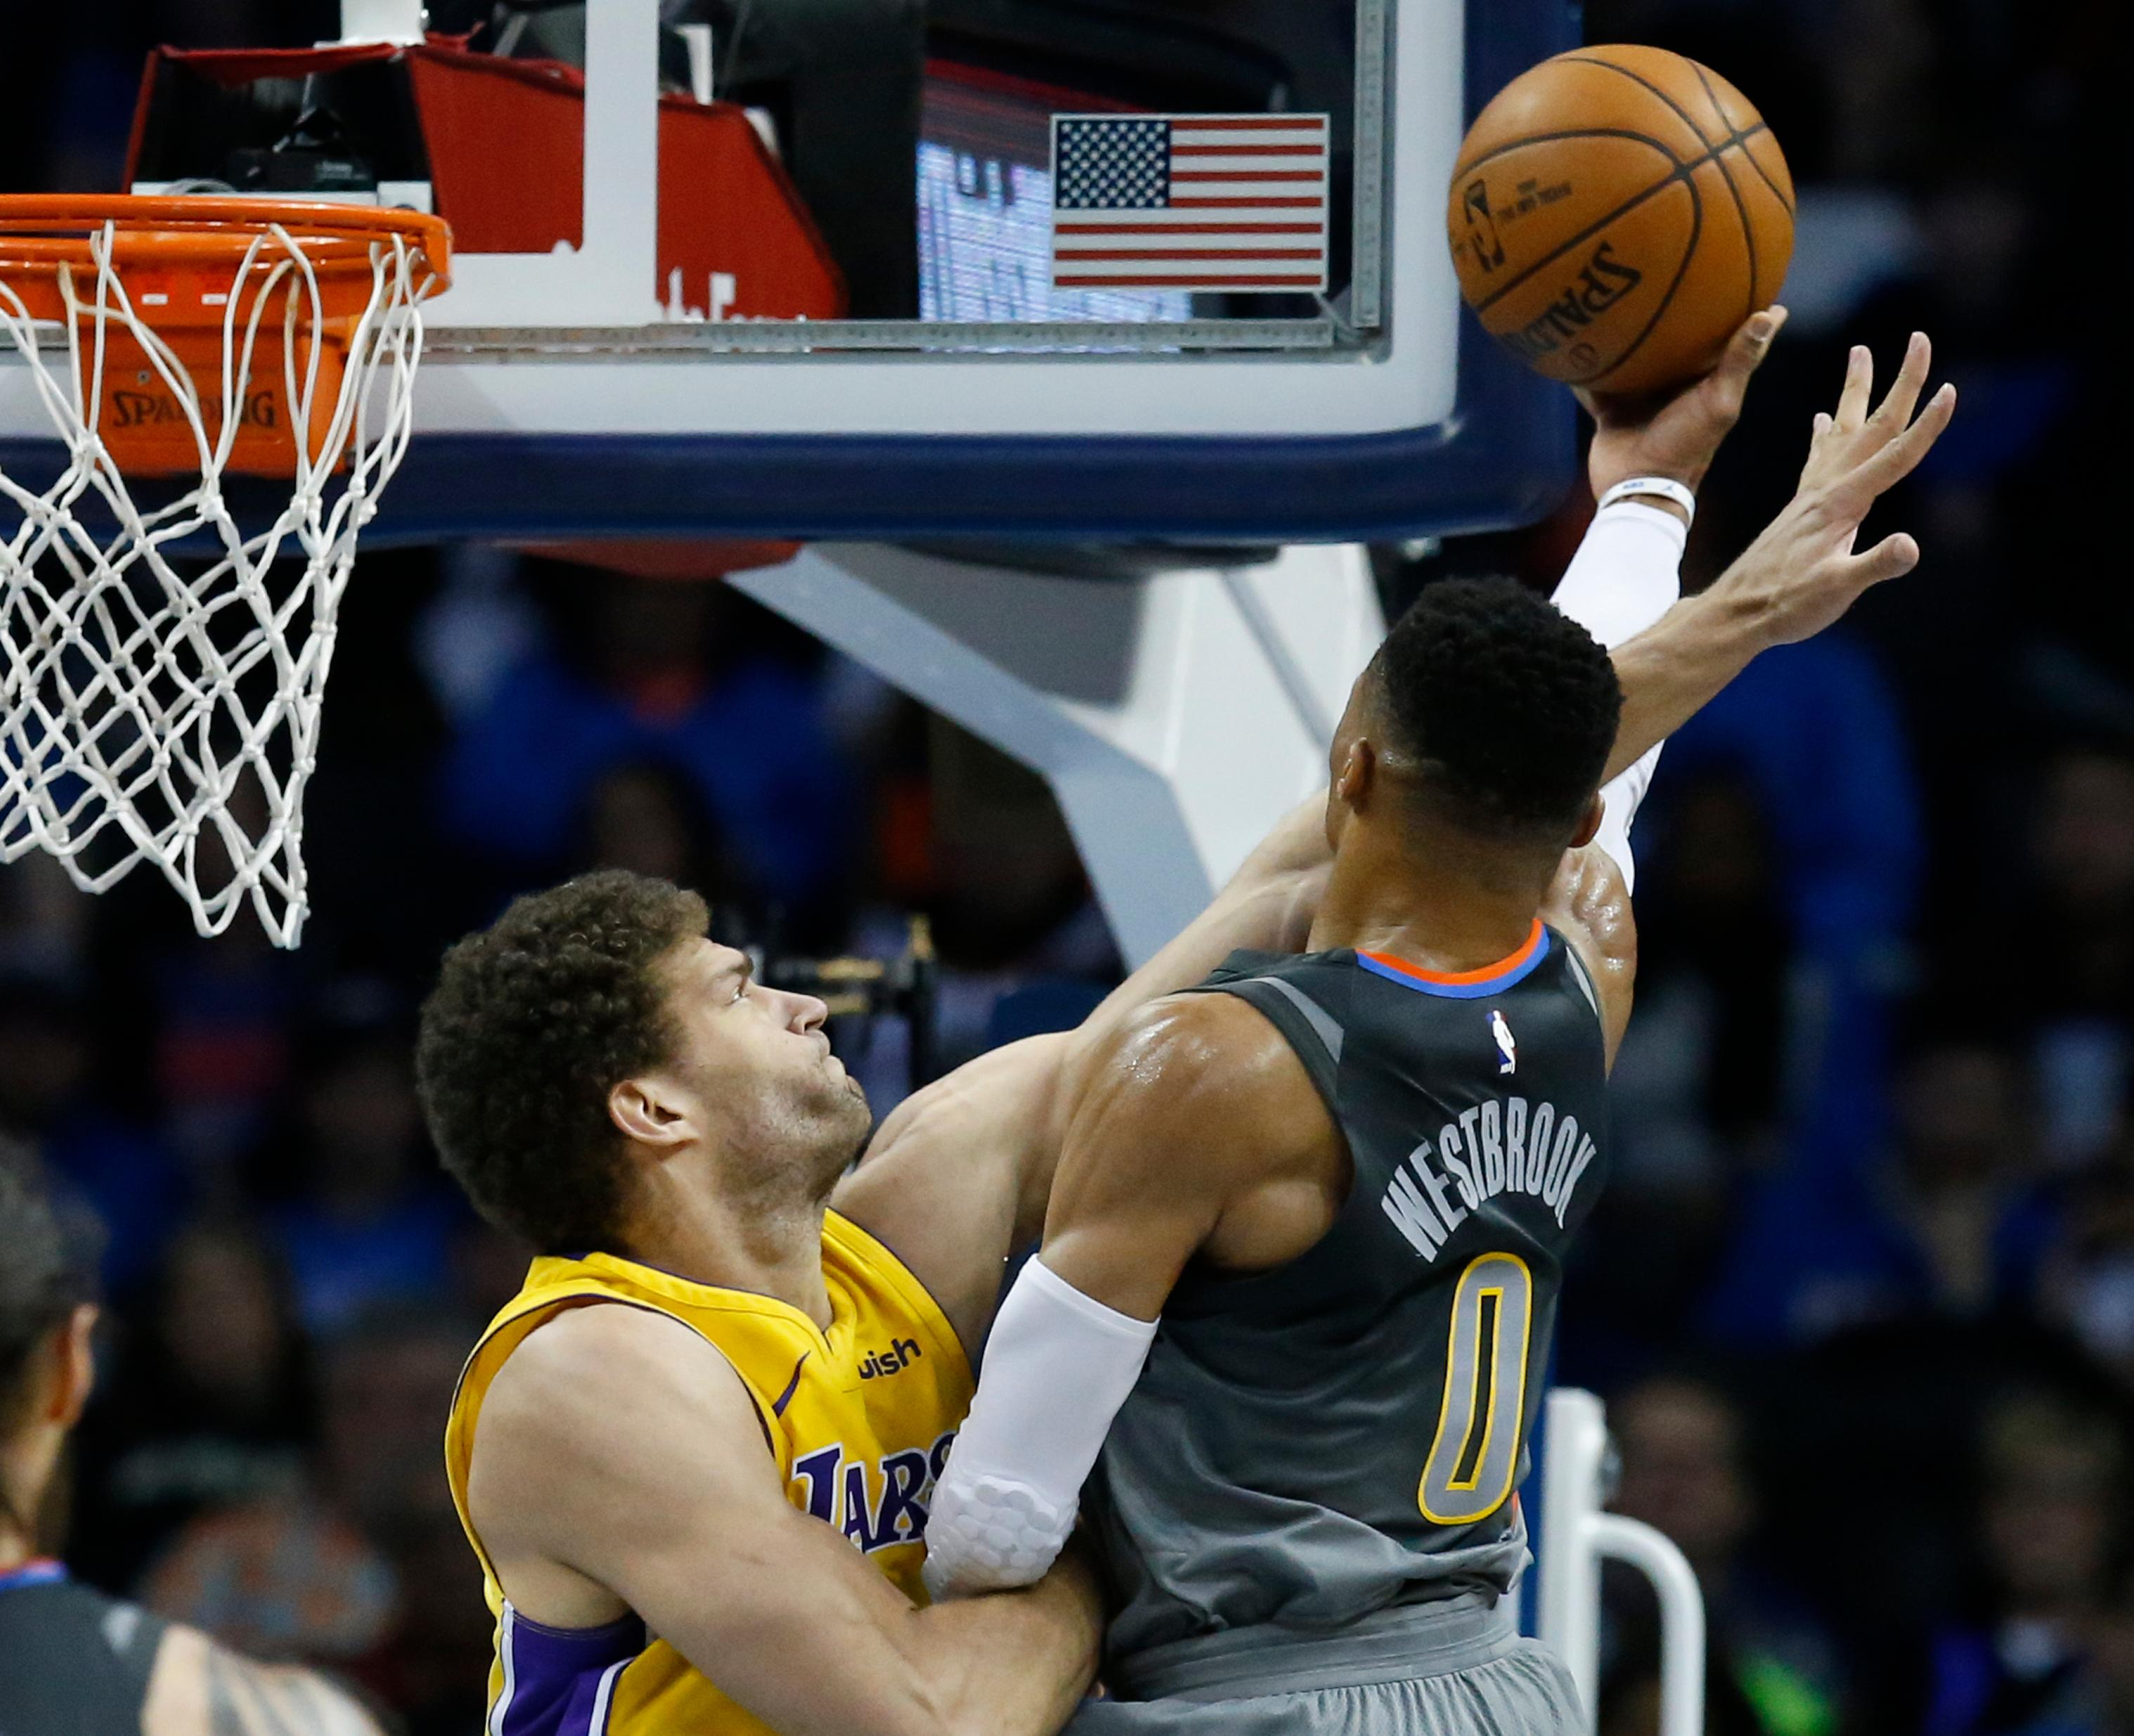 Los Angeles Lakers center Brook Lopez, left, fouls Oklahoma City Thunder guard Russell Westbrook (0) as Westbrook shoots in the first half of an NBA basketball game in Oklahoma City, Sunday, Feb. 4, 2018. (AP Photo/Sue Ogrocki)